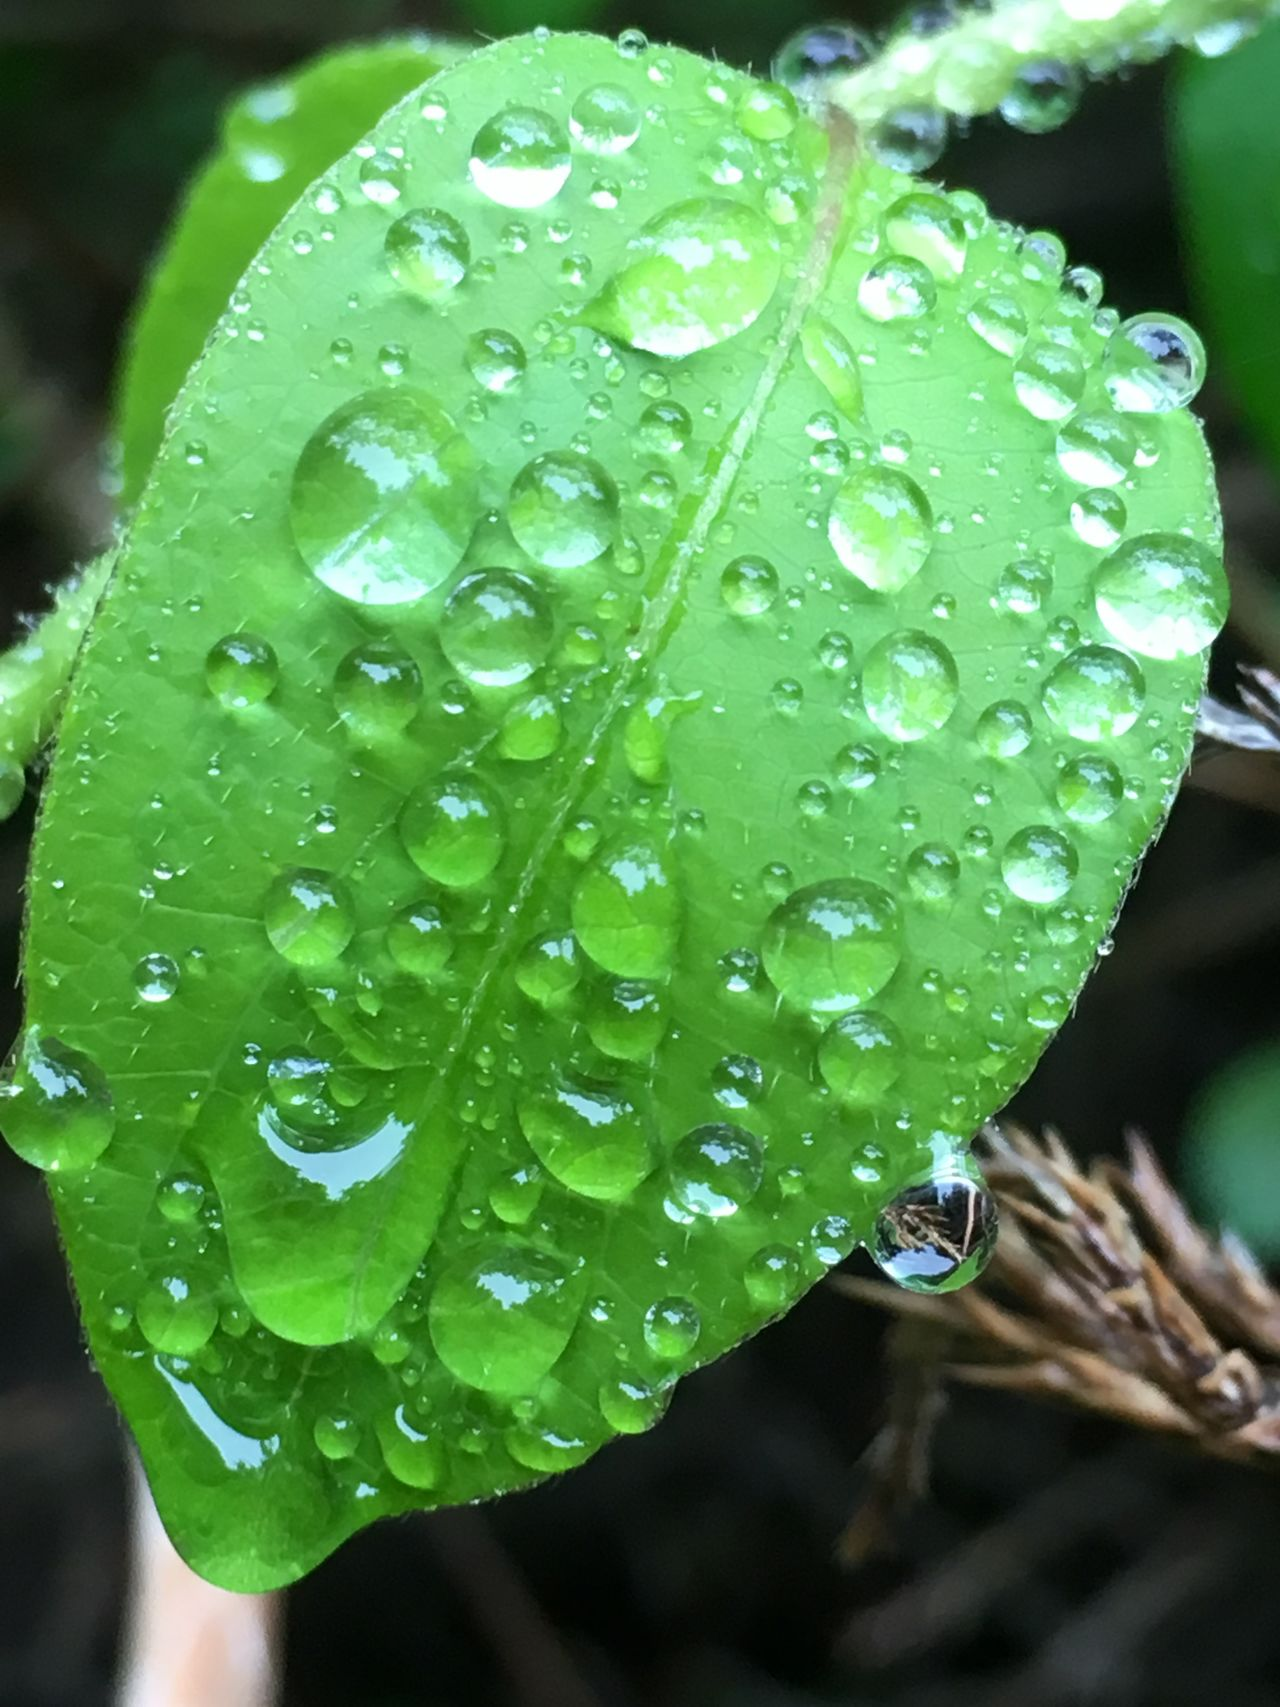 Beauty In Nature Close-up Drop Droplet Focus On Foreground Fragility Freshness Green Color Rain Drops On Leaves RainDrop Raindrops Raindrops On Leaves Water Wet